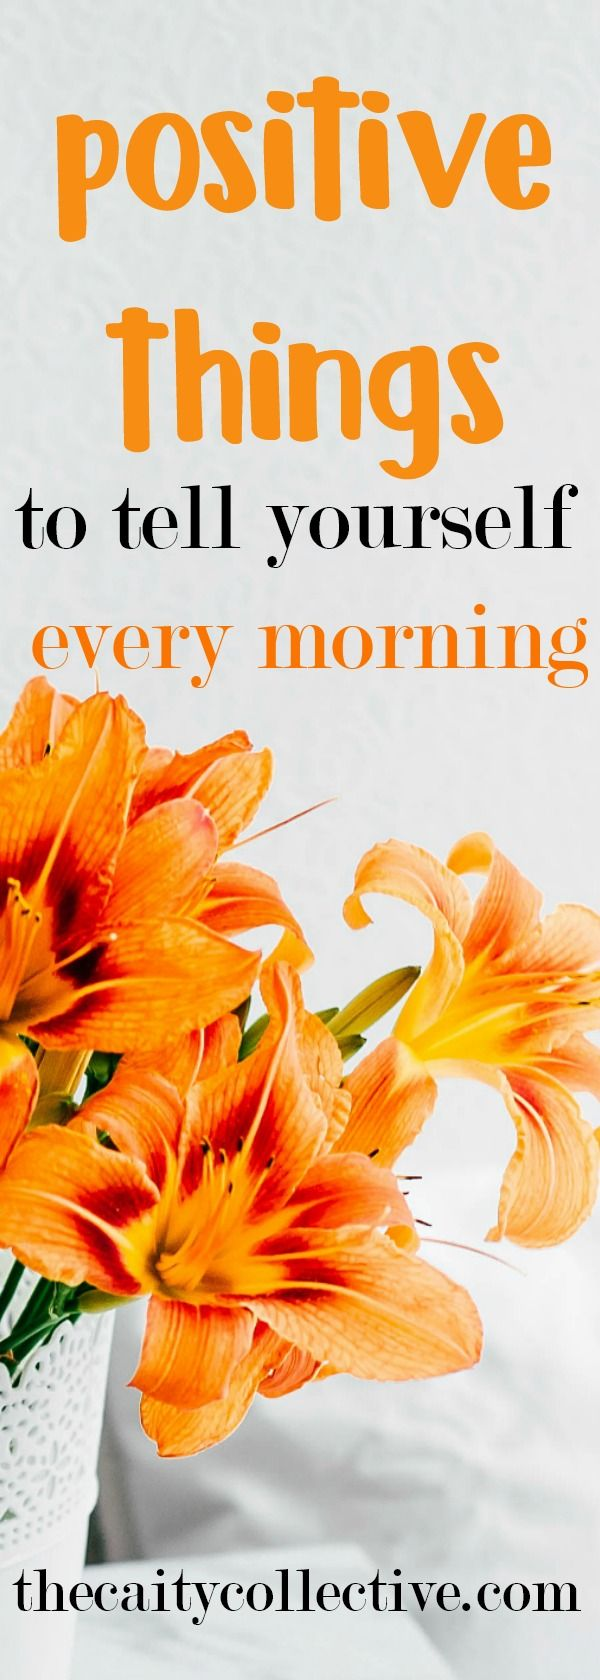 Positive things to tell yourself every morning, positive affirmations, morning affirmations